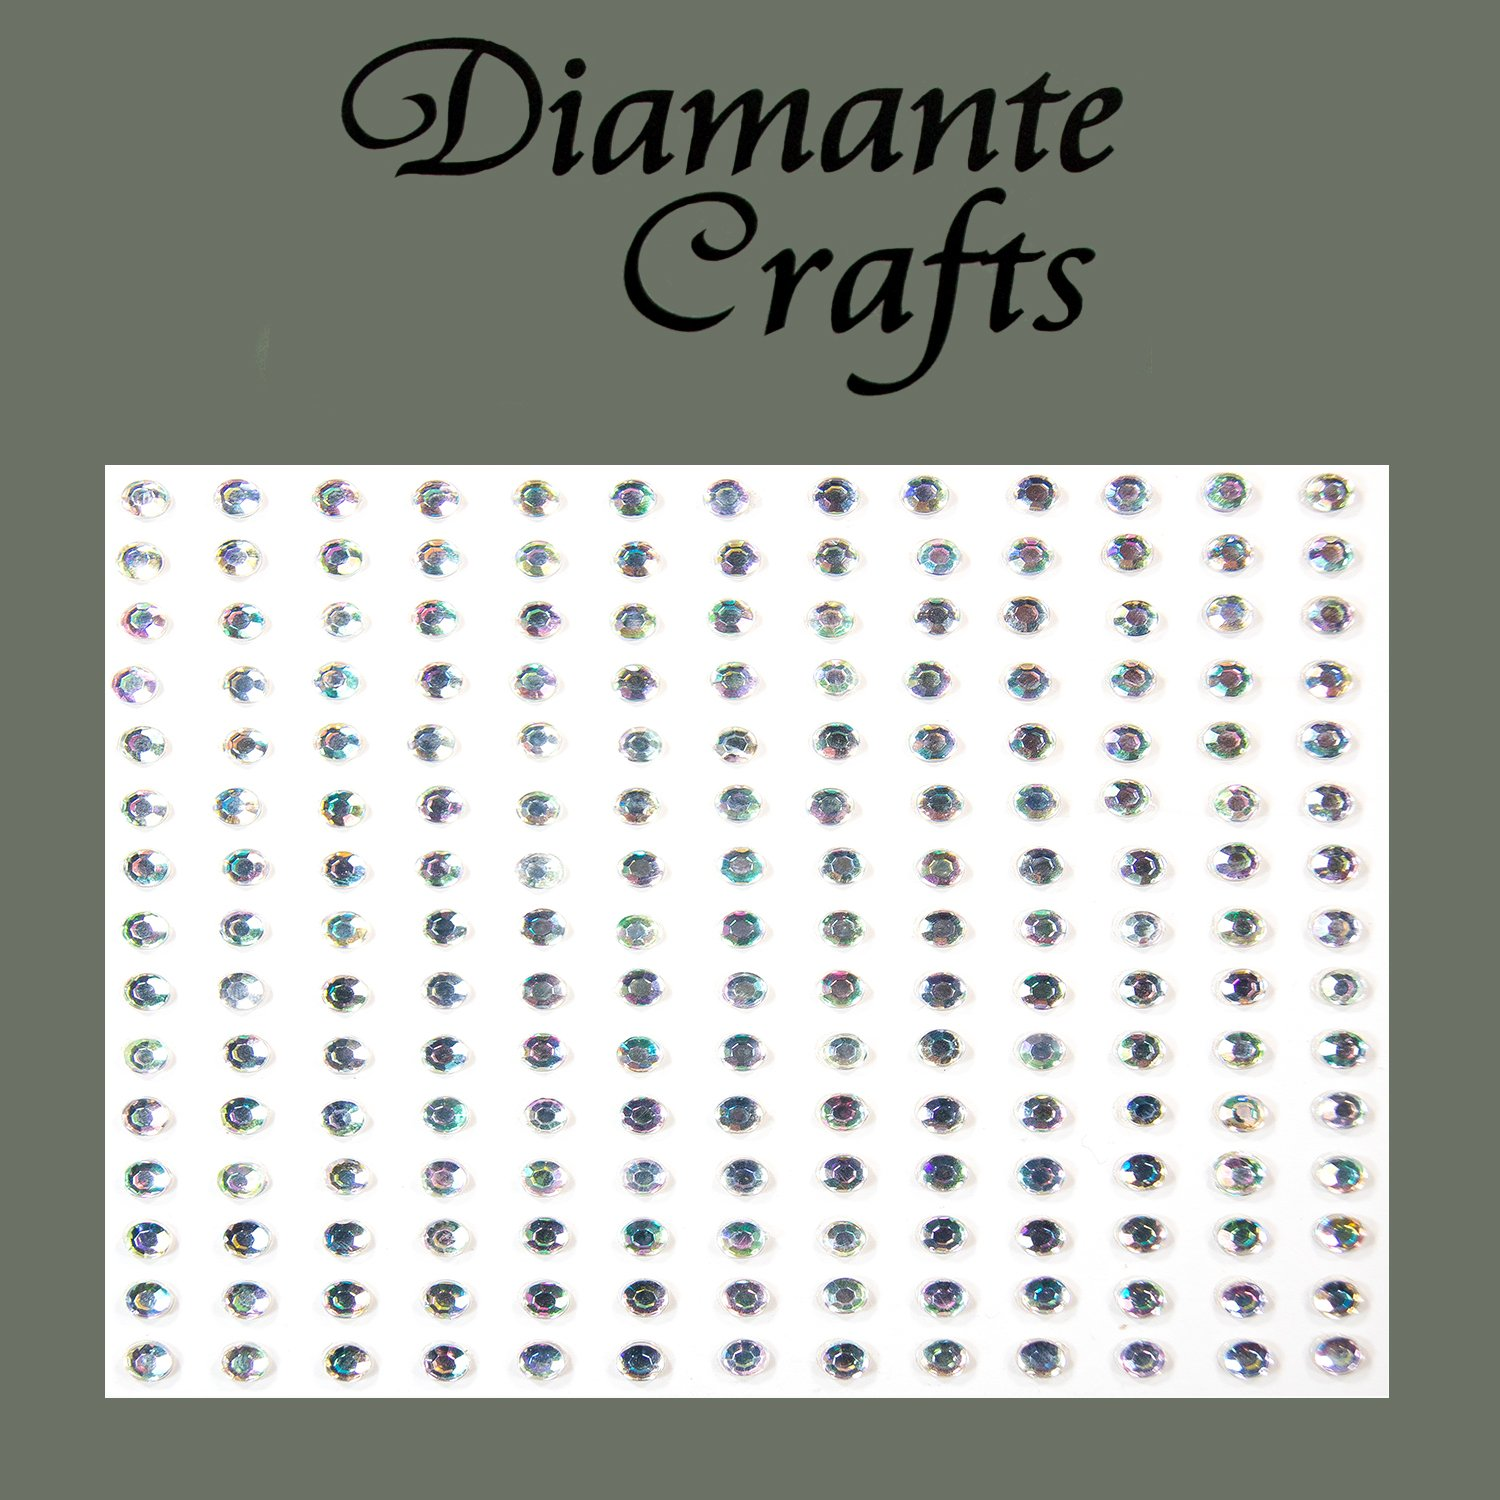 195 x 3mm Clear Iridescent AB Diamante Vajazzle Rhinestone Gems - created exclusively for Diamante Crafts